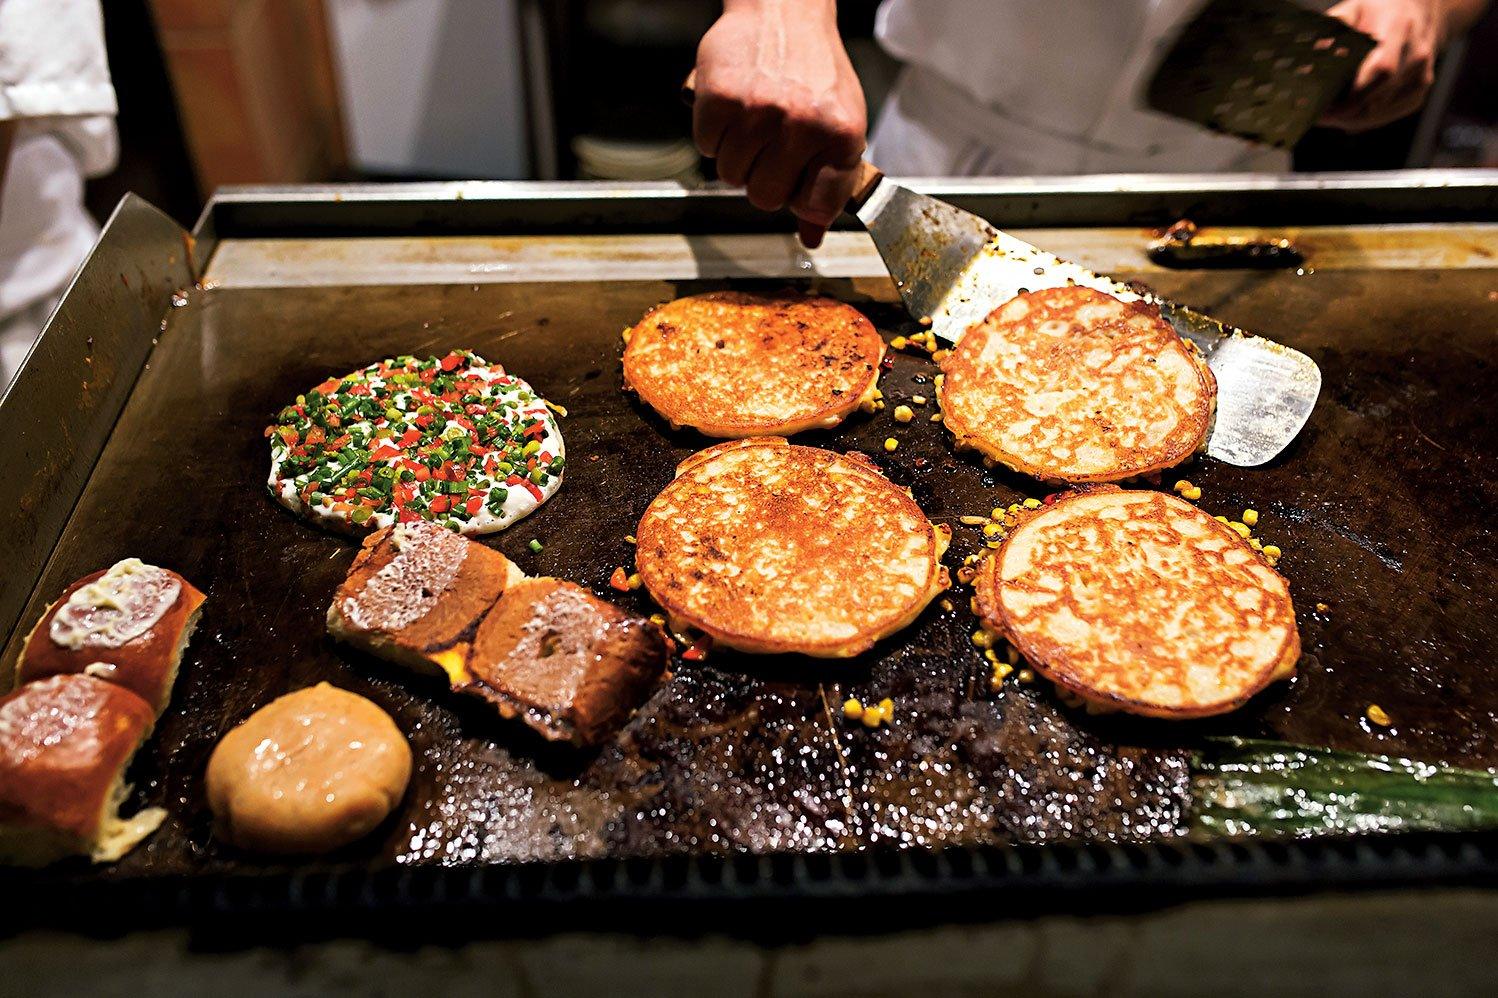 Uttapams on the griddle. Photo by Scott Suchman.